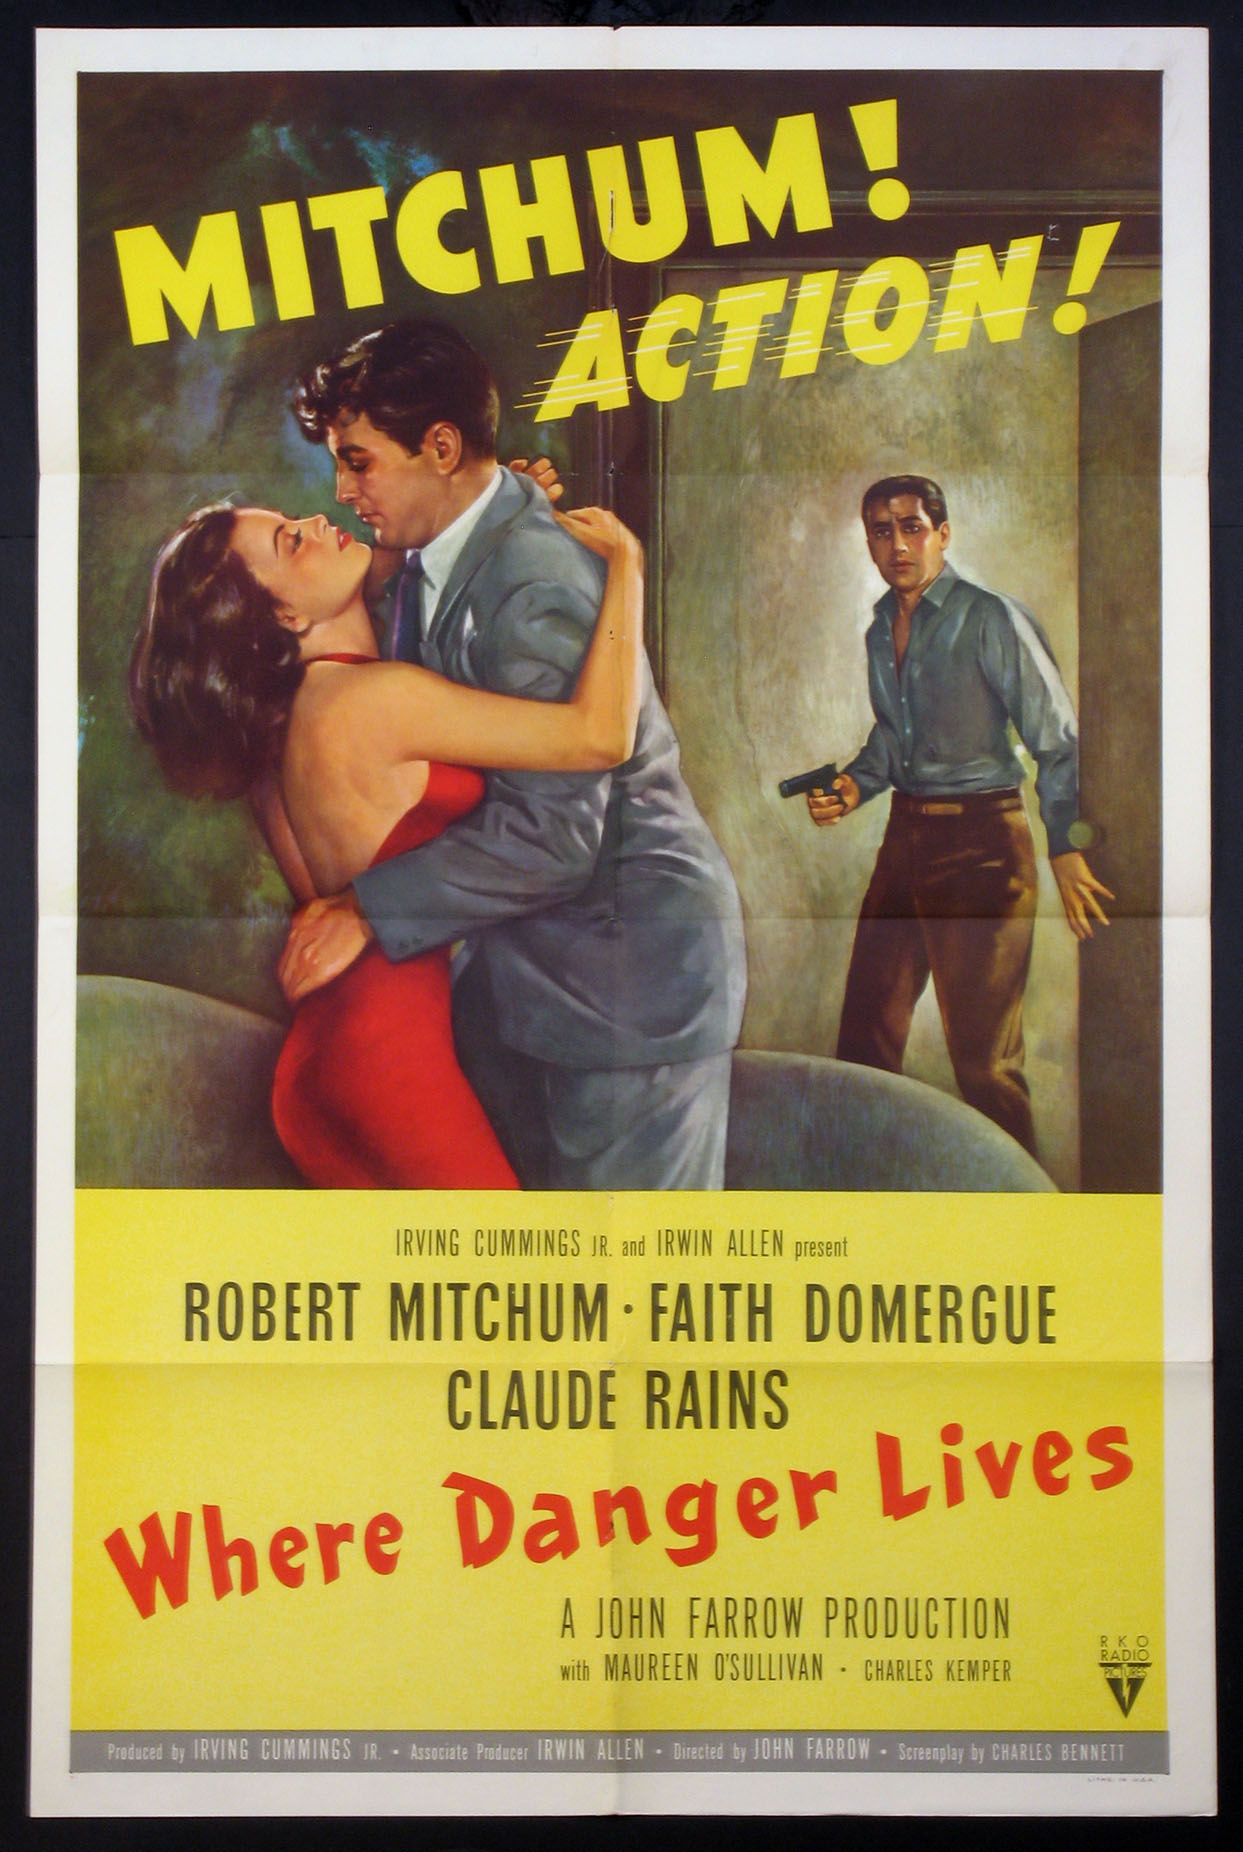 WHERE DANGER LIVES @ FilmPosters.com